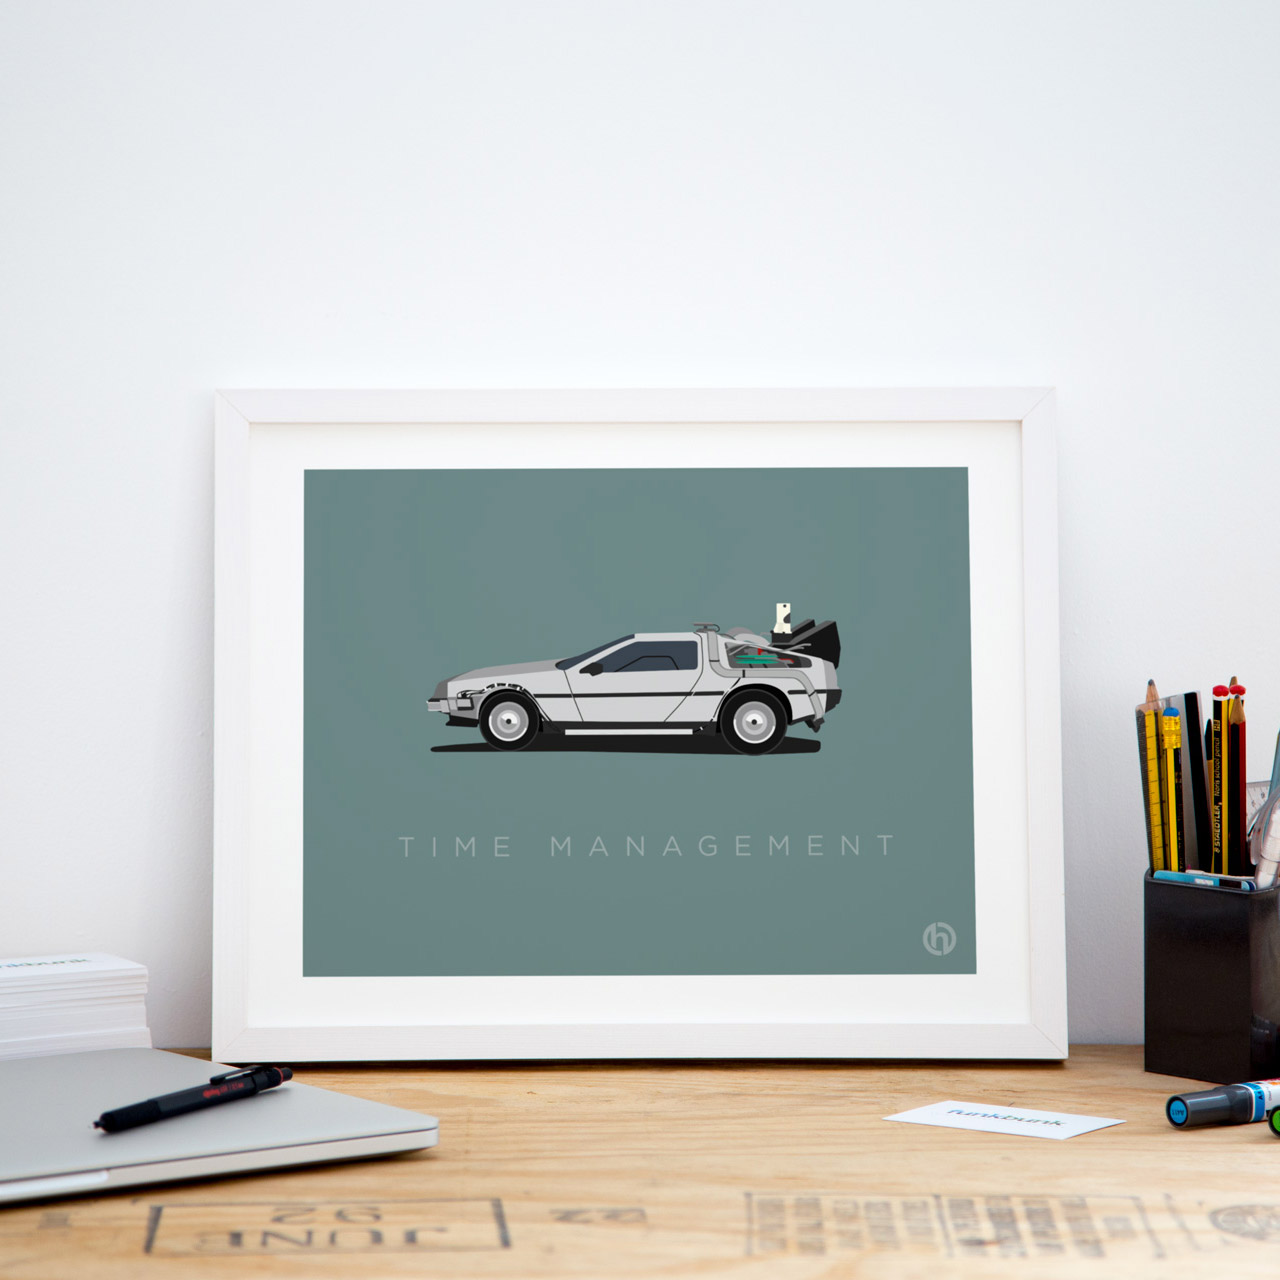 Small framed delorean office art print poster